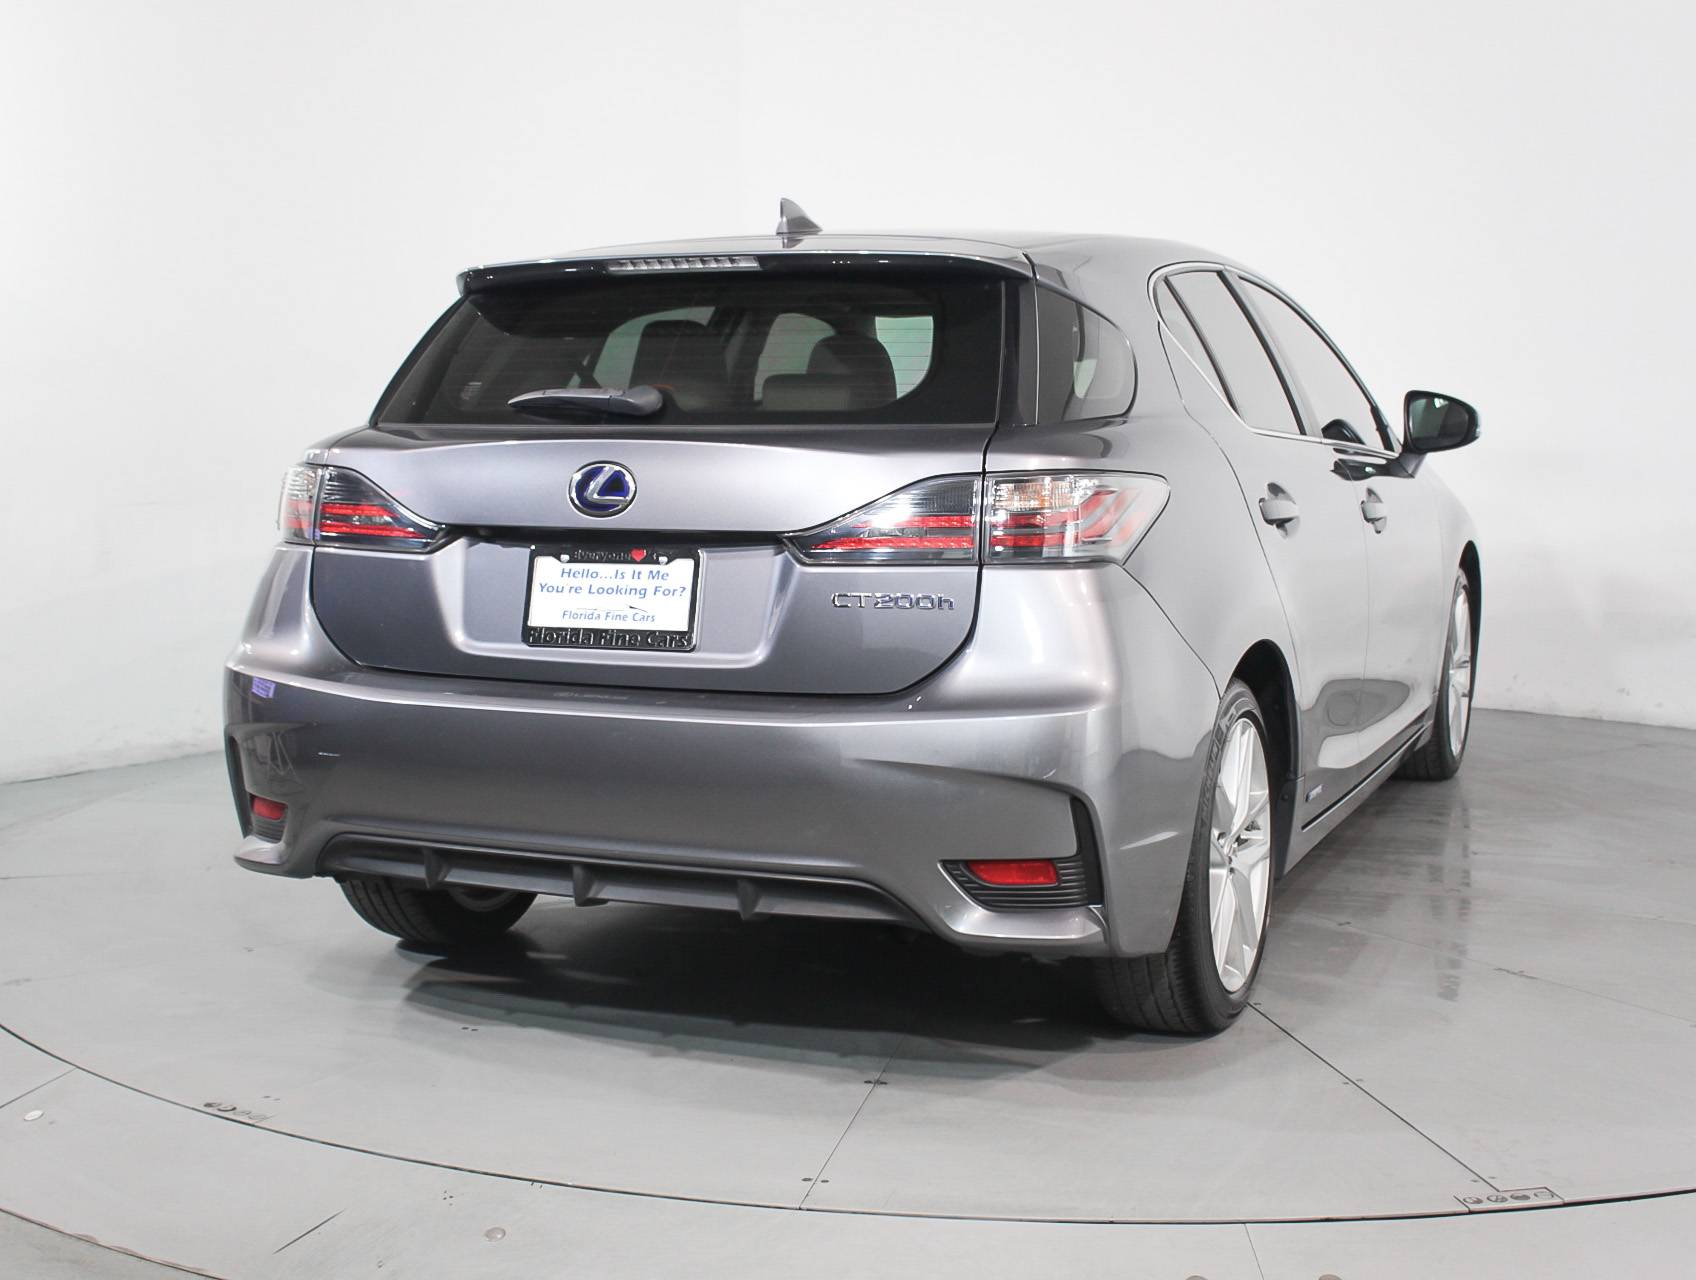 hatchback specs ct new prices profile lexus review exterior car overlay headline side redline